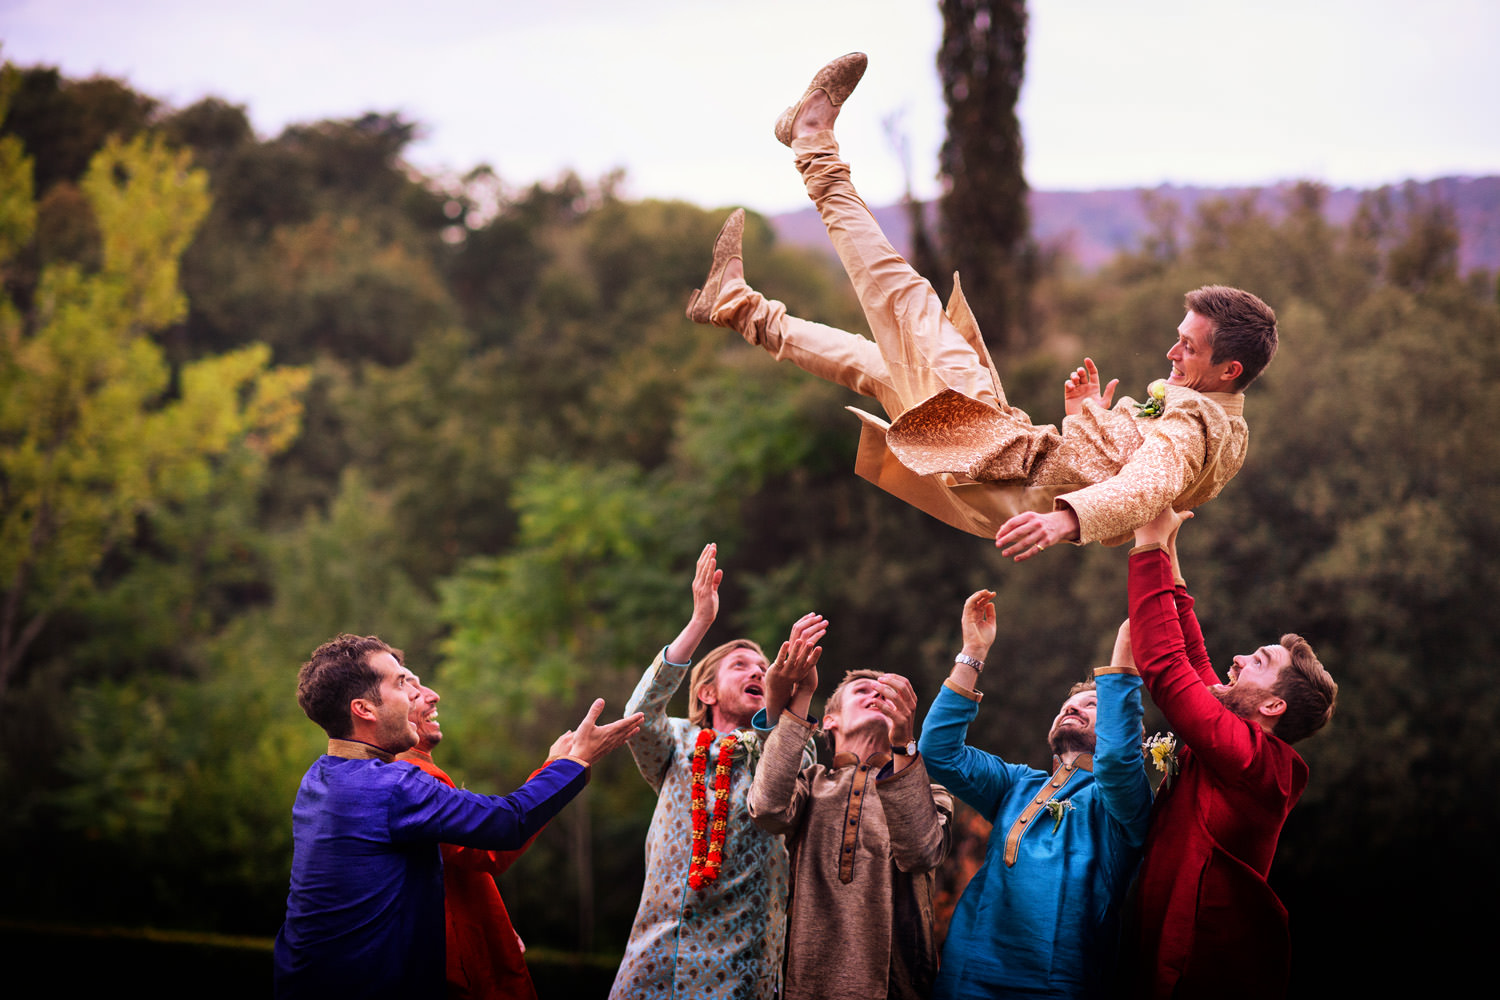 Indian wedding in Villa castelletti. Groom jump